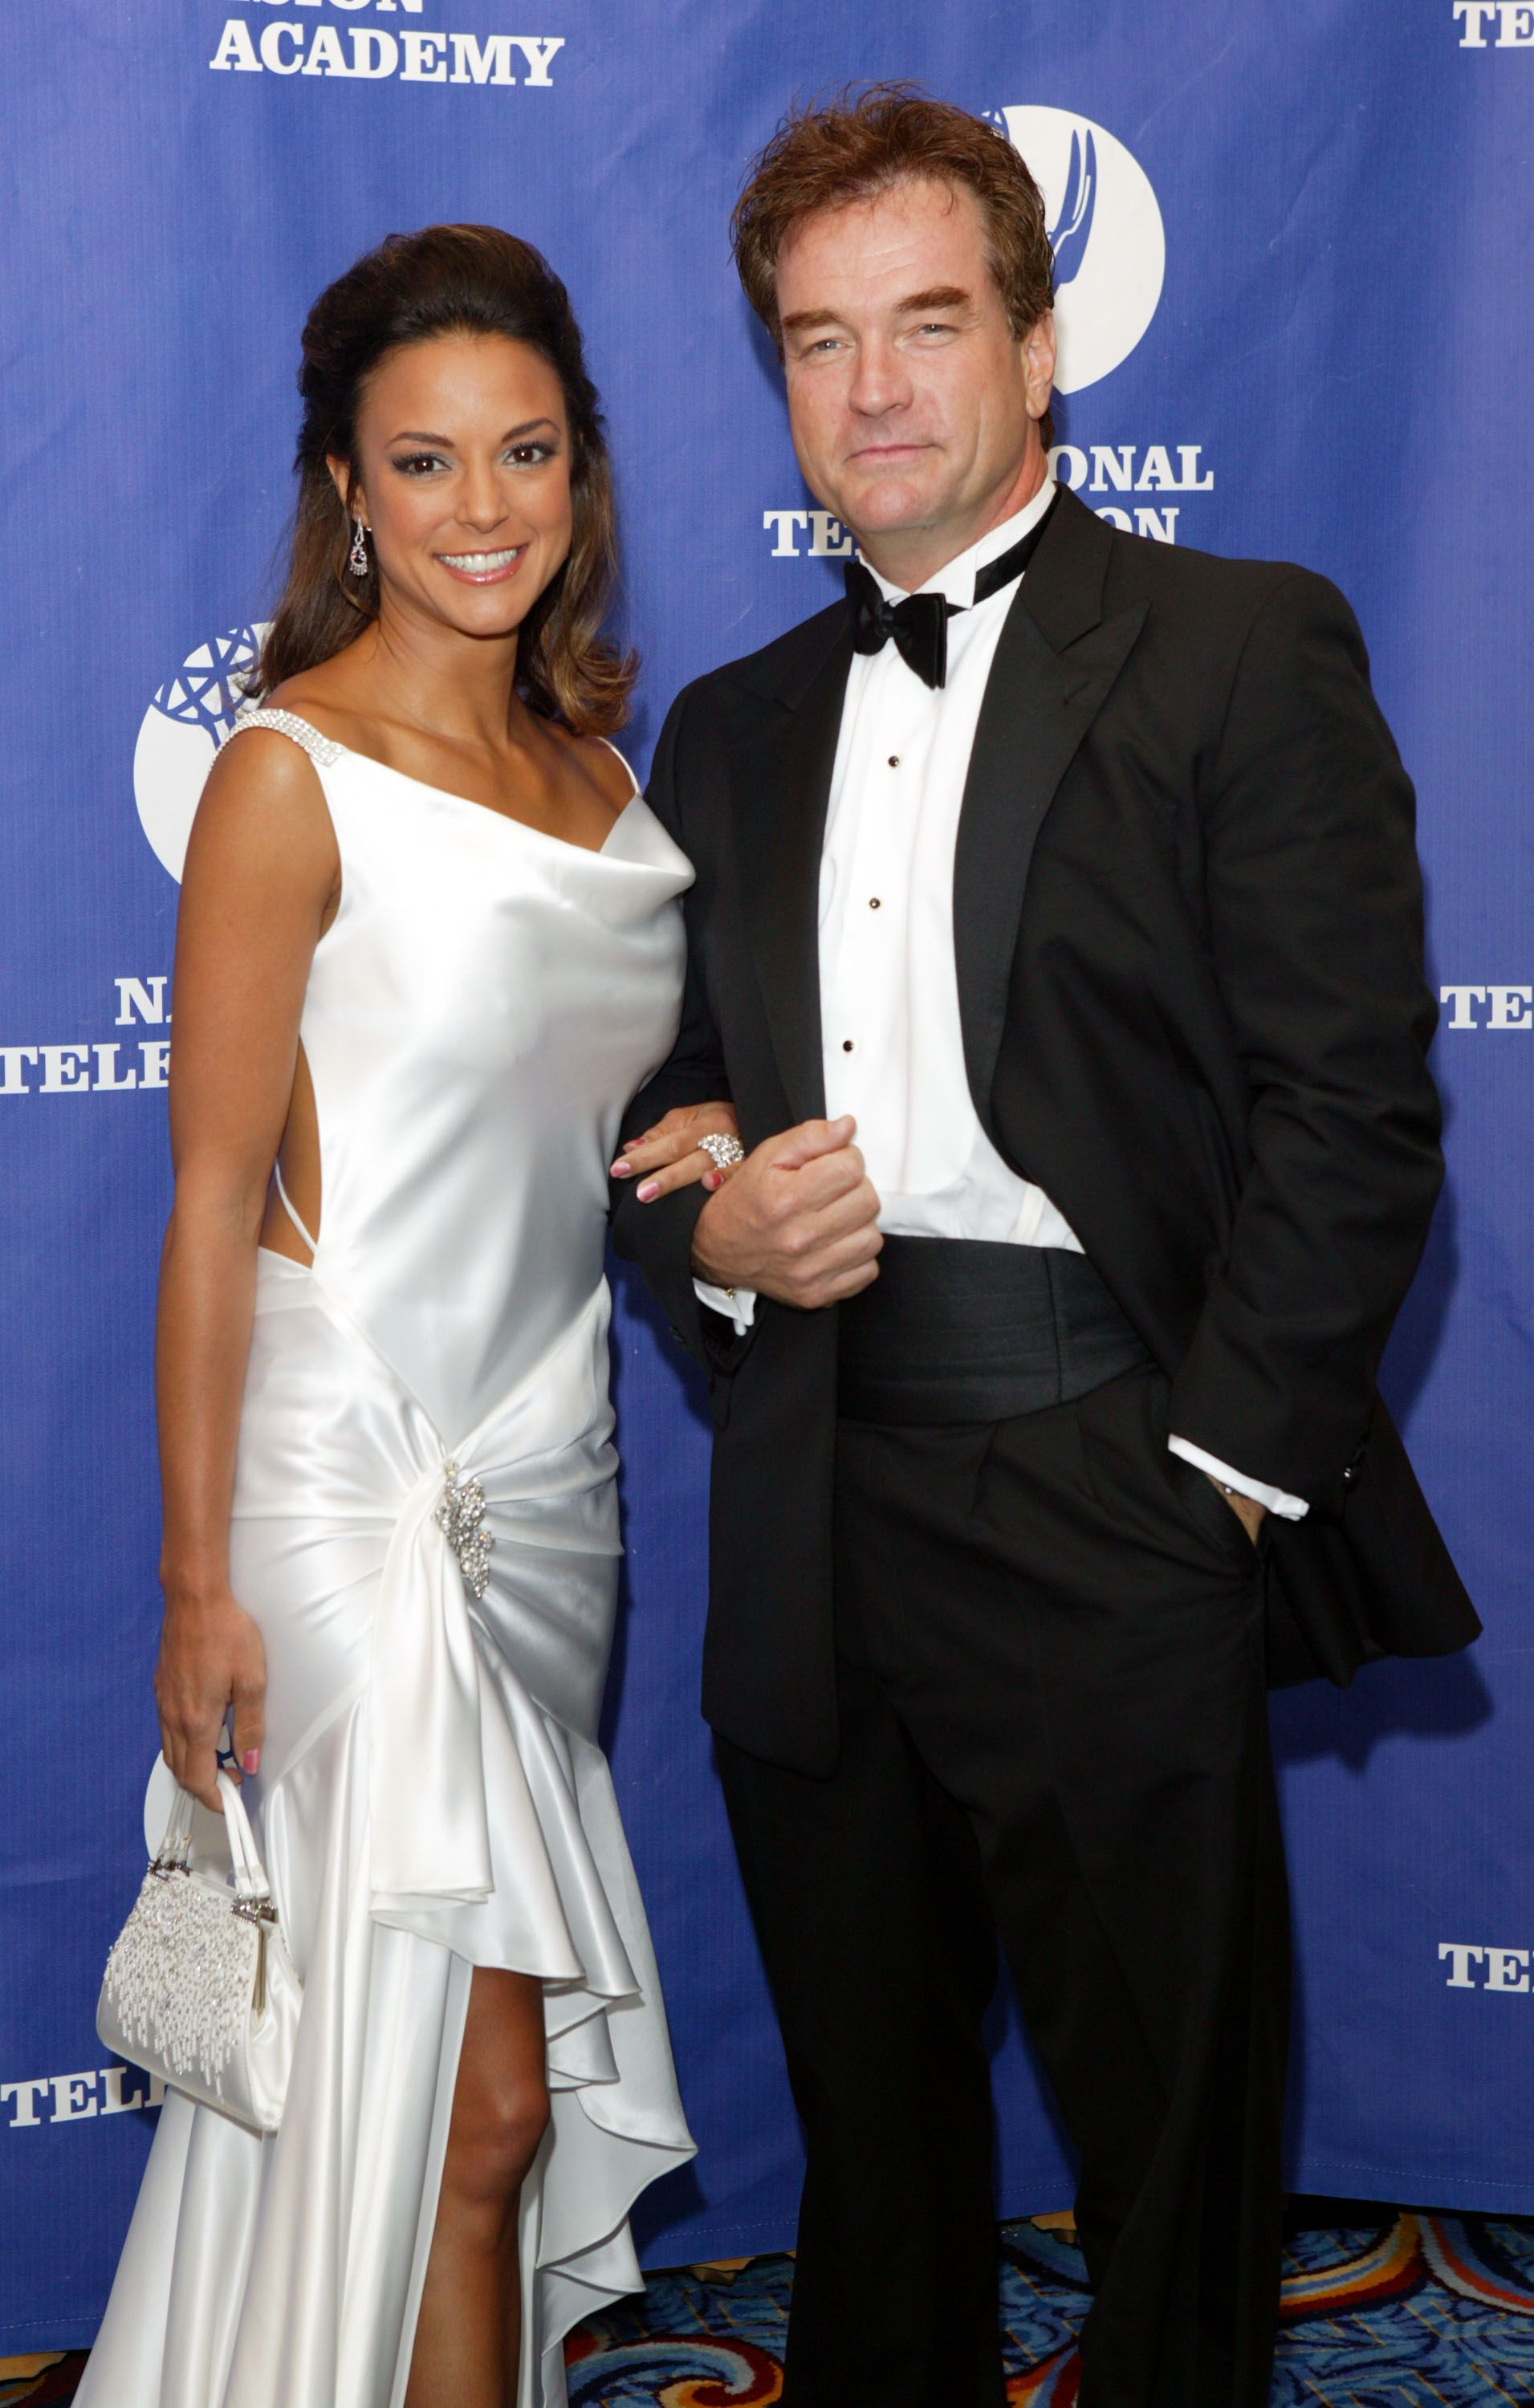 Eva LaRue and John Callahan at the 31st Annual Creative Craft Daytime Emmy Awards on May 15, 2004 in New York City | Photo: Getty Images